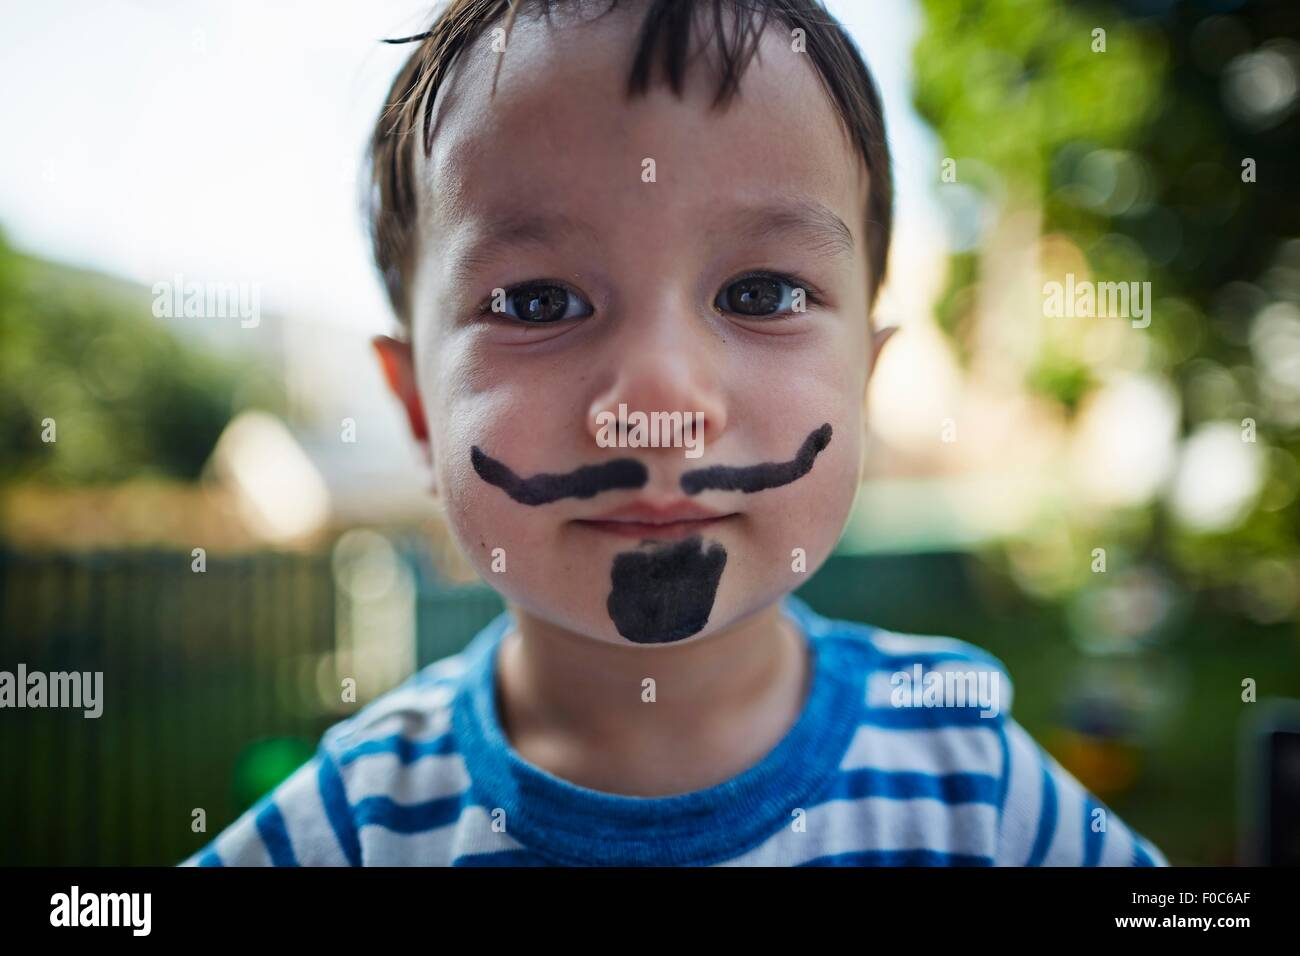 Close up portrait of boy looking at camera wearing beard and moustache face paint costume Stock Photo